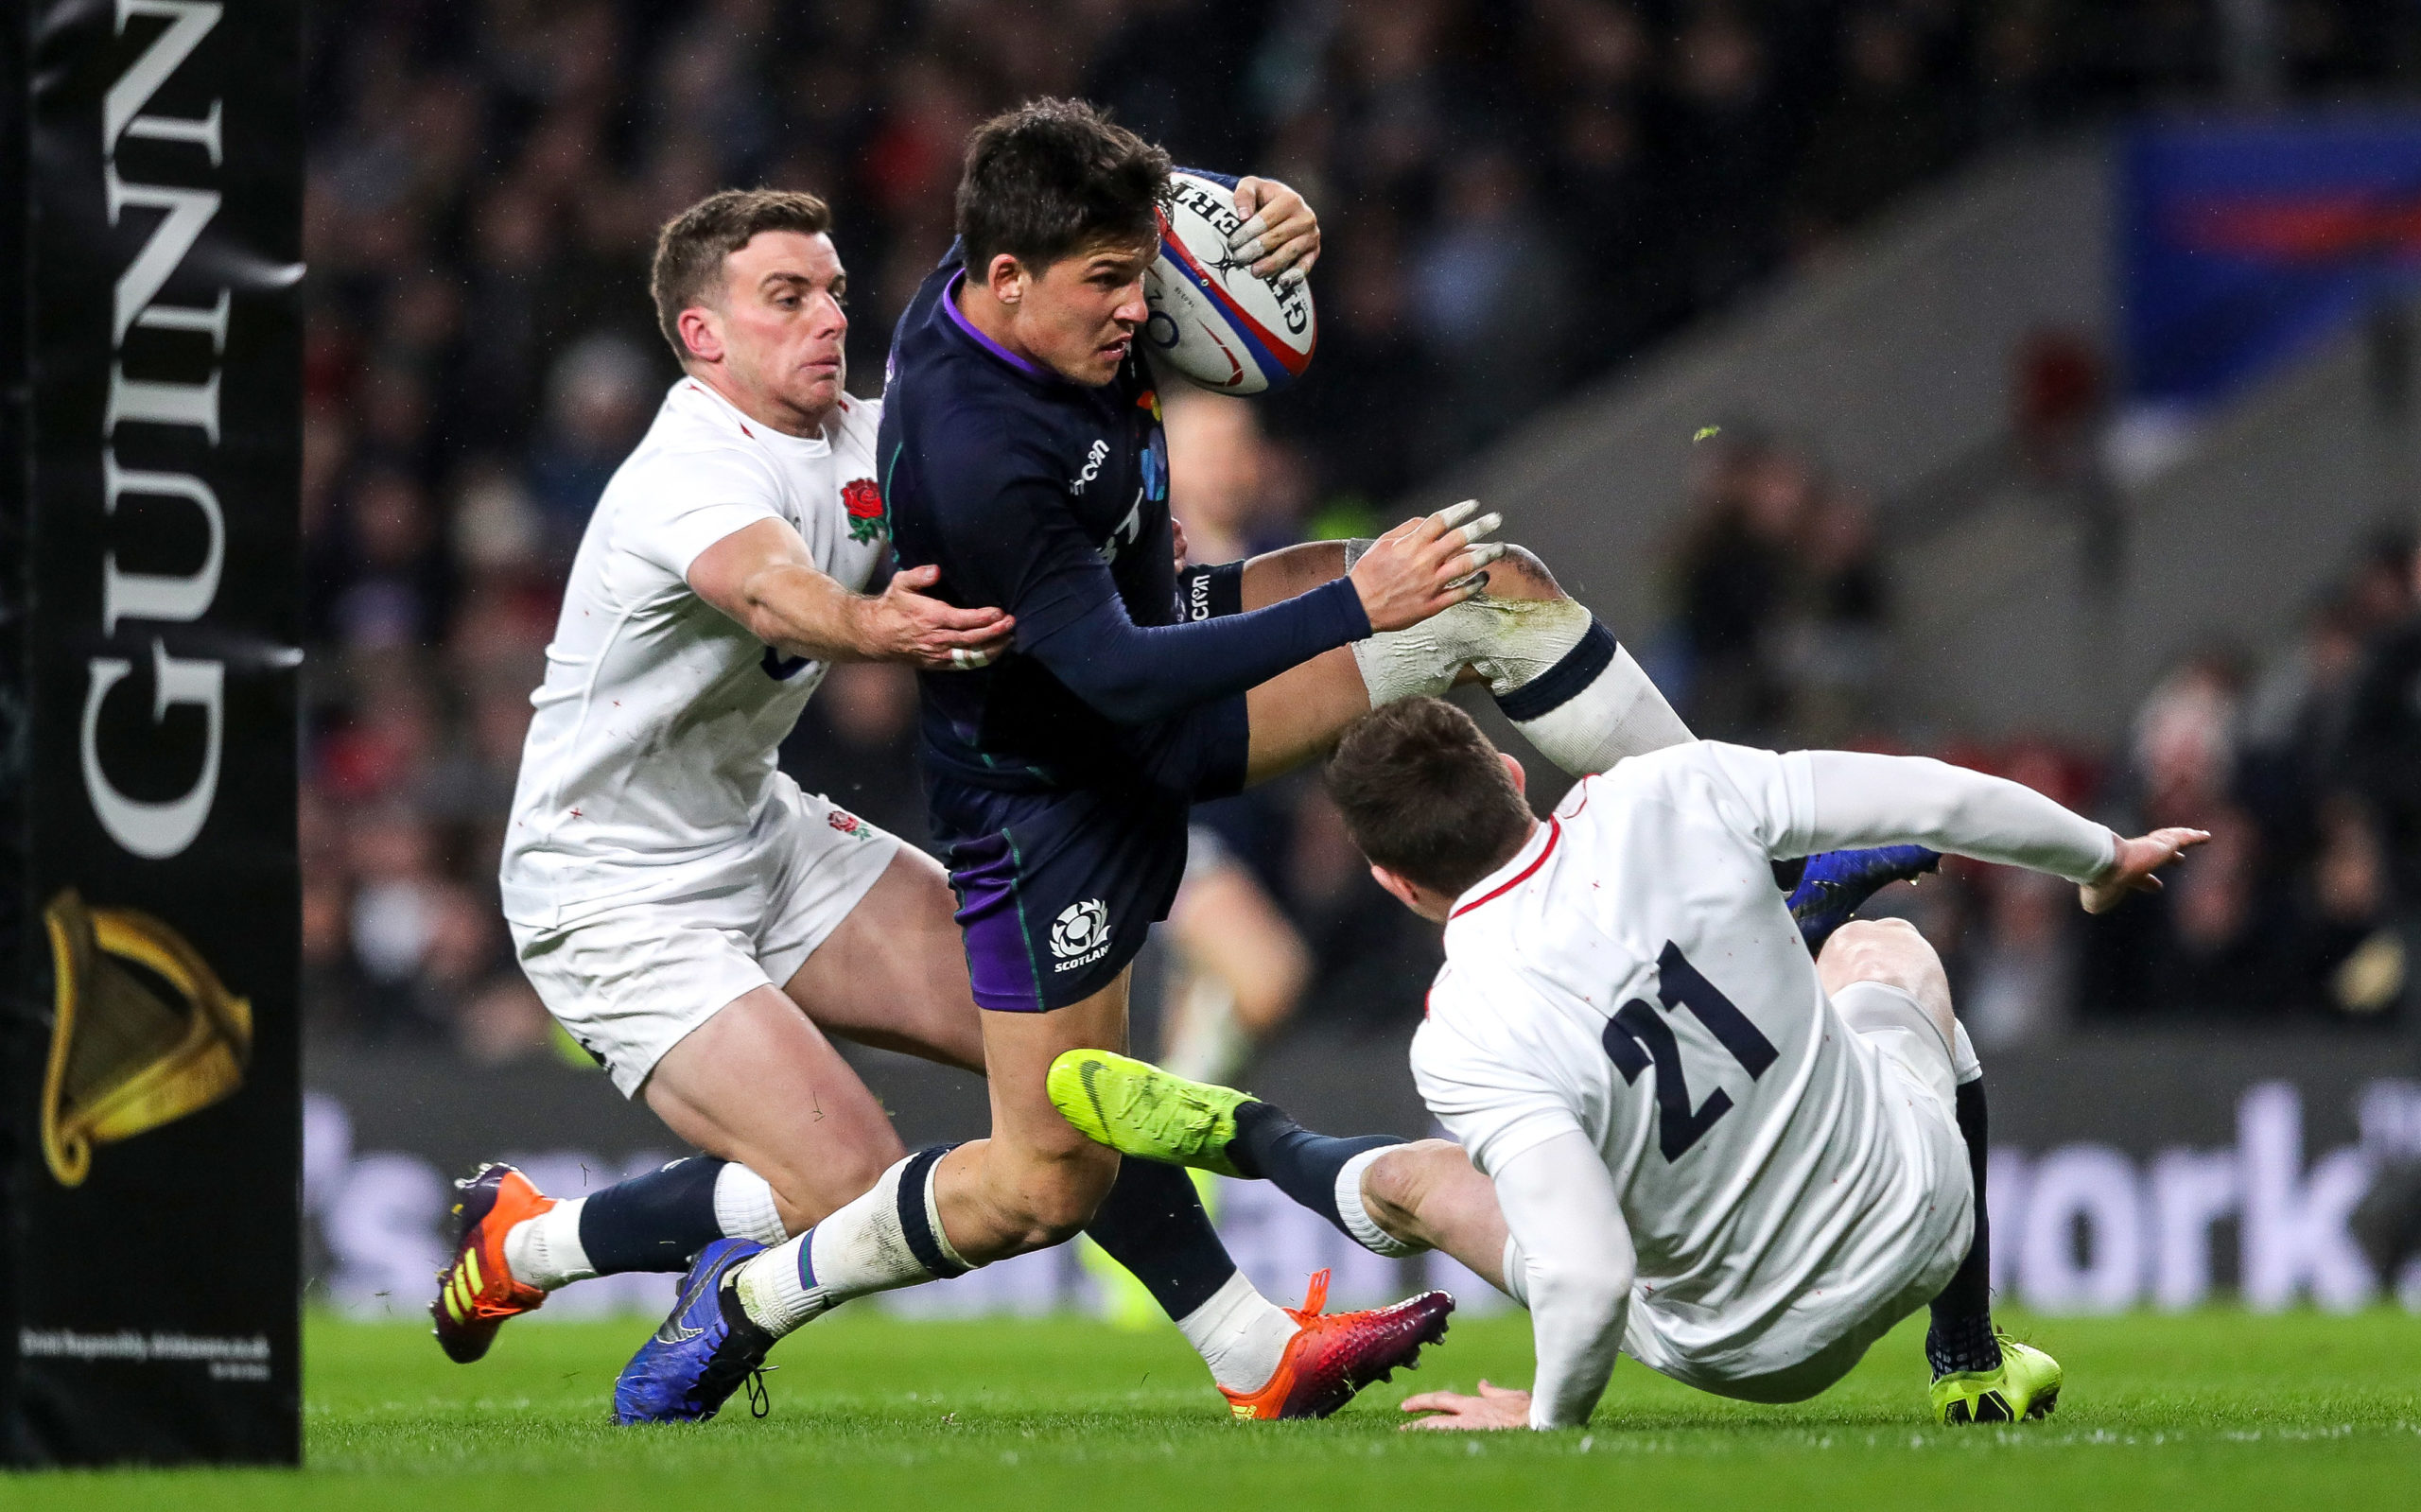 Sam Johnson goes through to score his dramatic try in the 2018 Calcutta Cup.